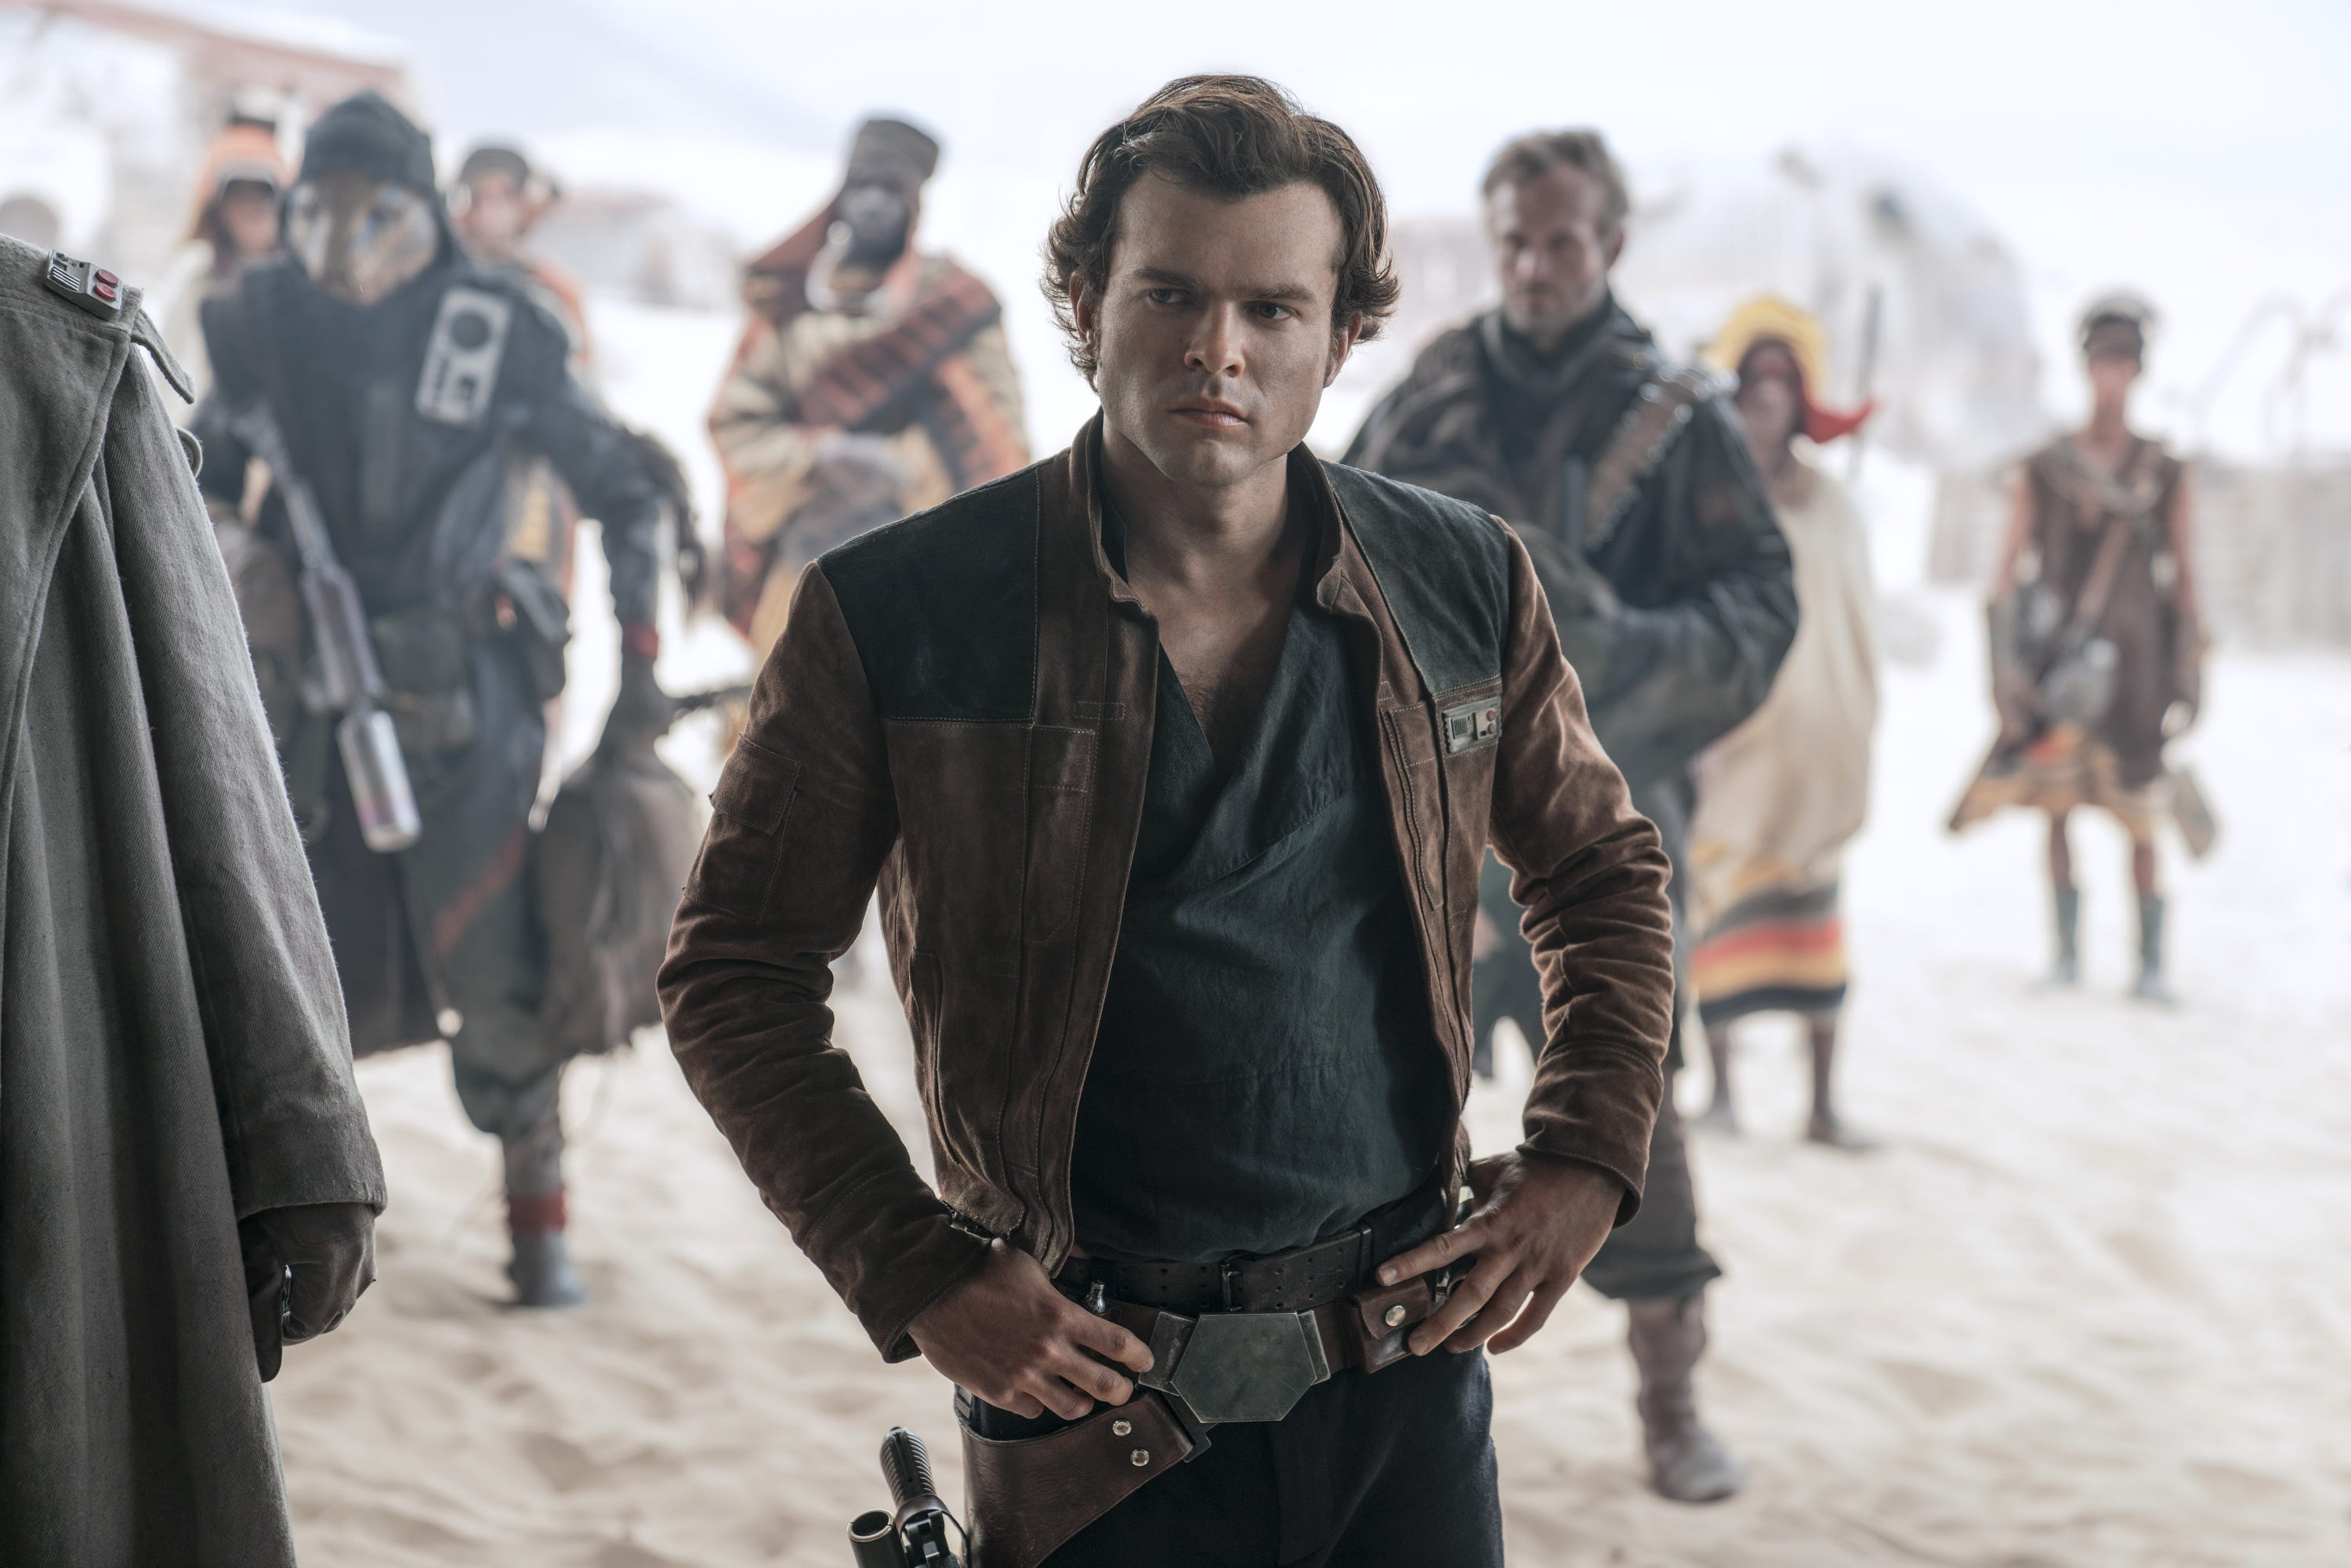 The 5 biggest movie bombs of 2018, from 'Solo: A Star Wars Story' to 'Robin Hood'